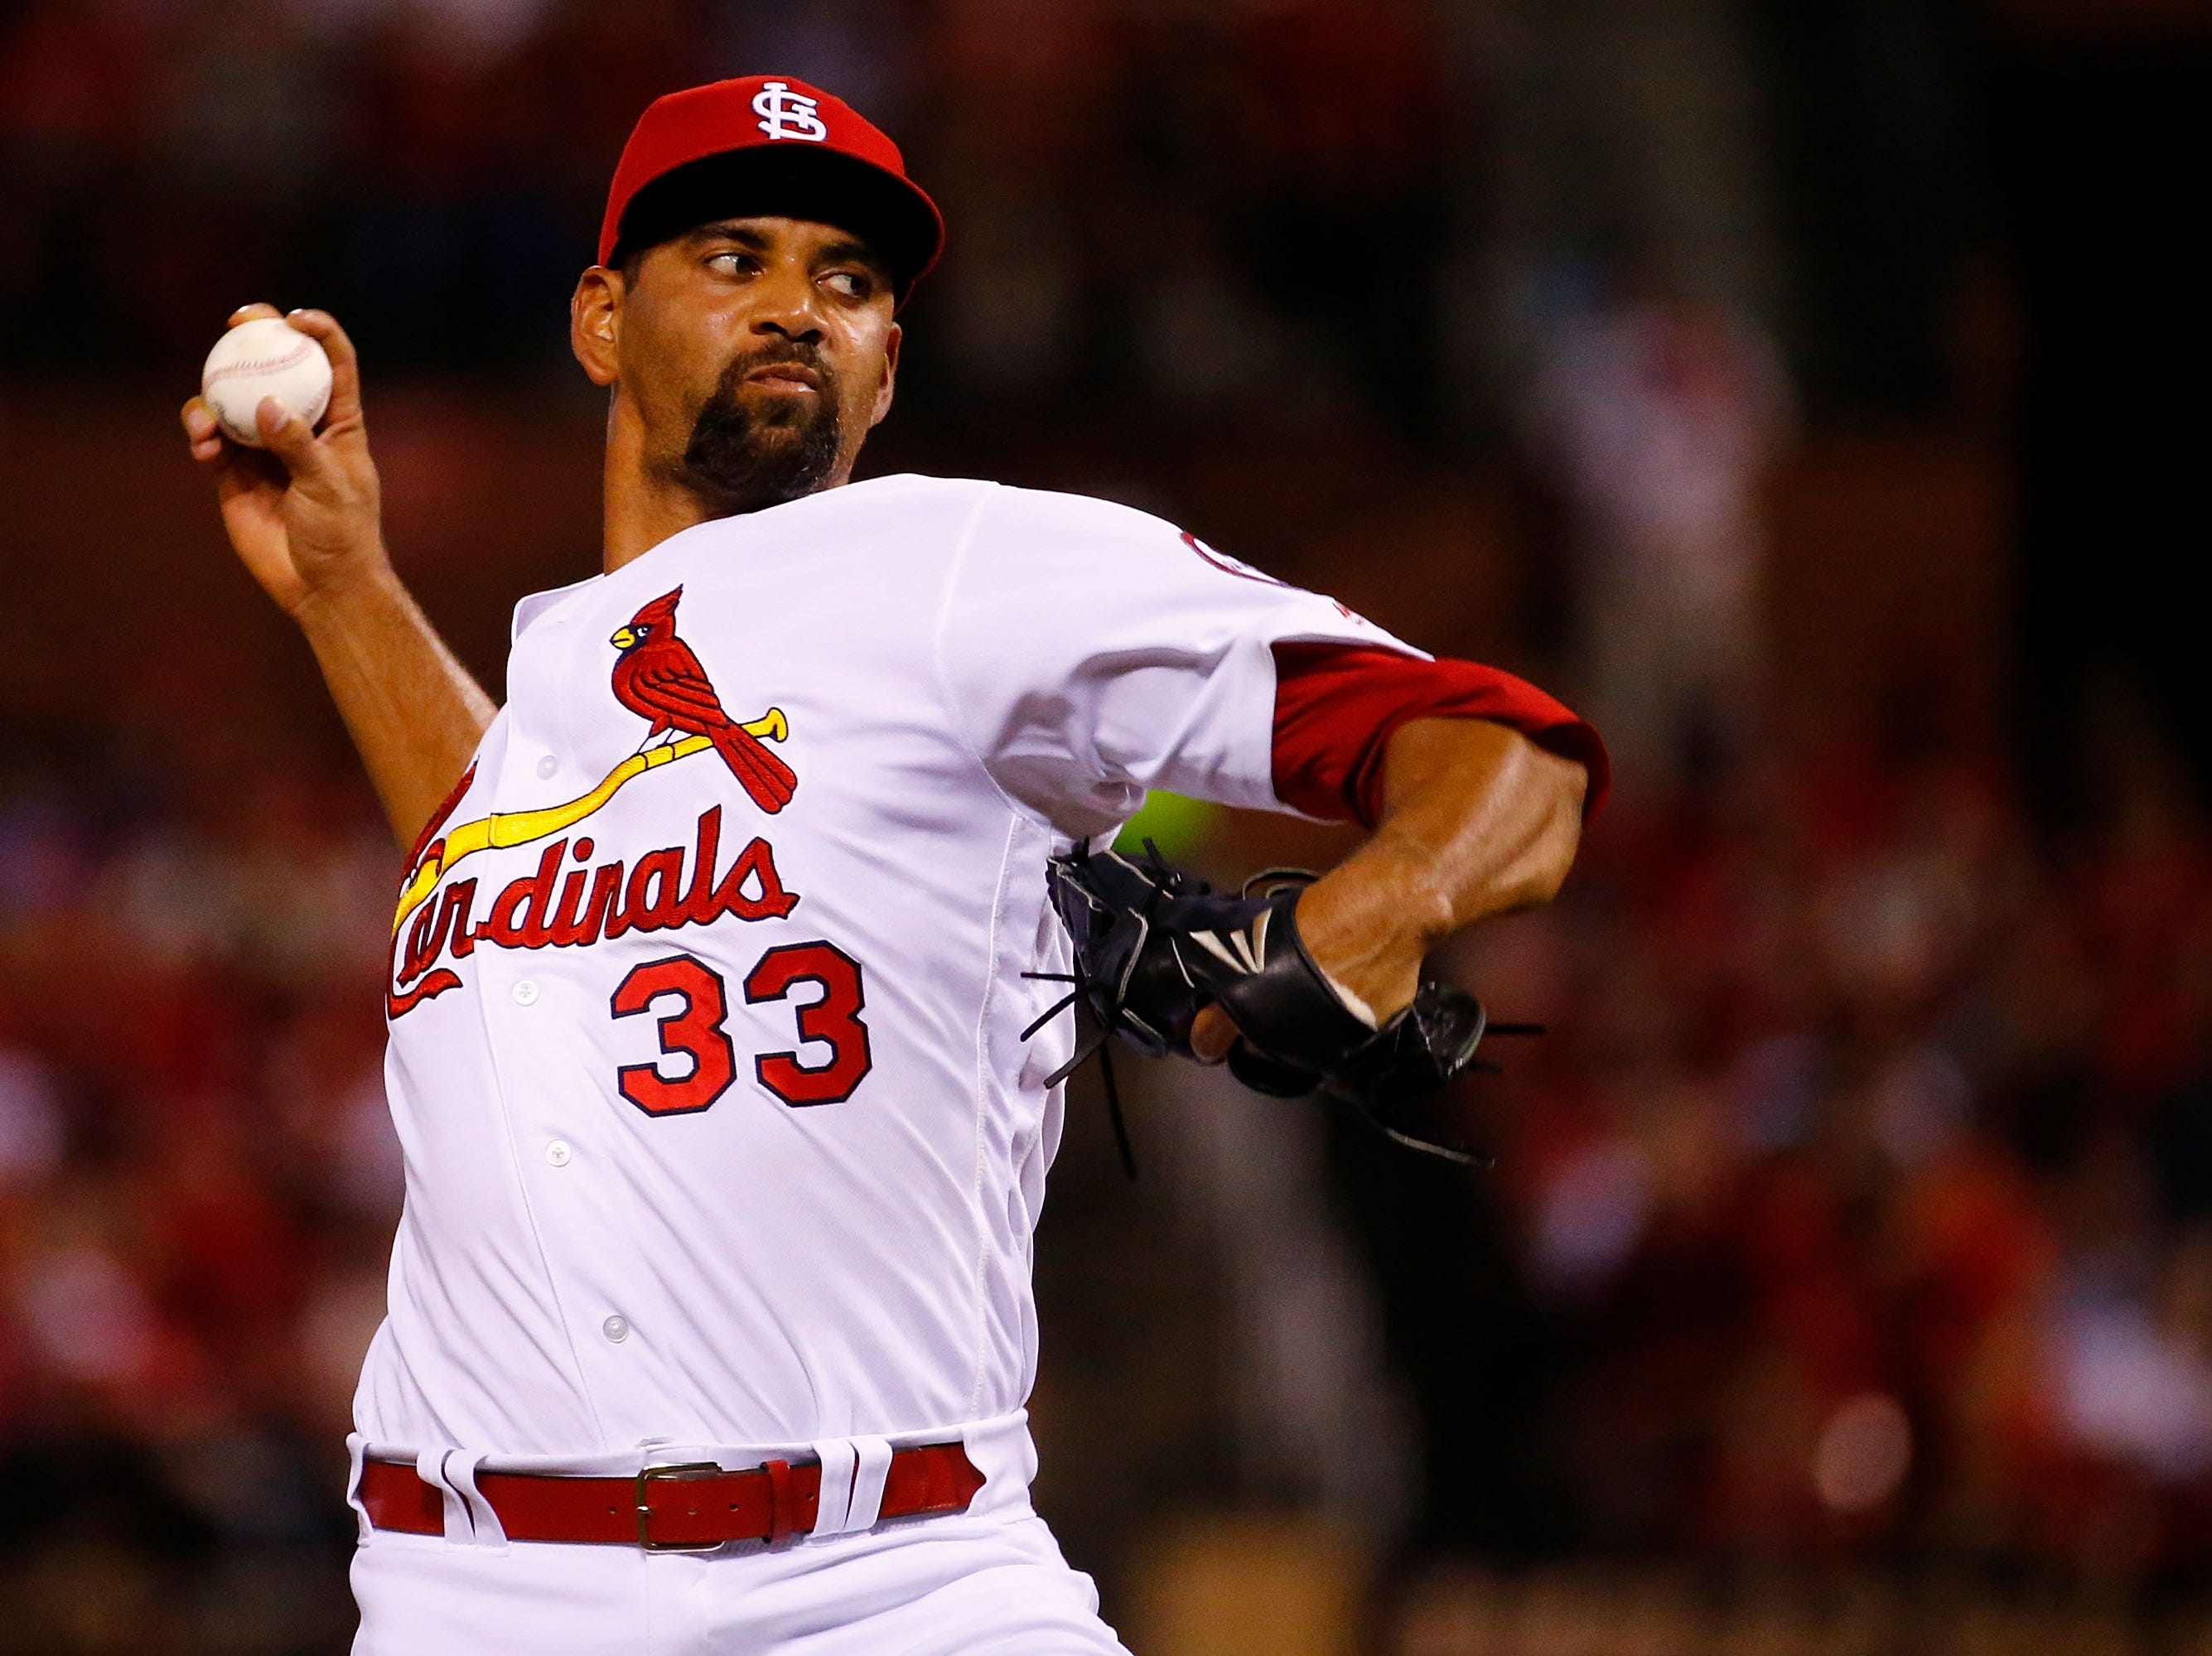 Tyson Ross of the St. Louis Cardinals pitches against the Los Angeles Dodgers in the fourth inning on September 13, 2018 in St. Louis, Missouri.